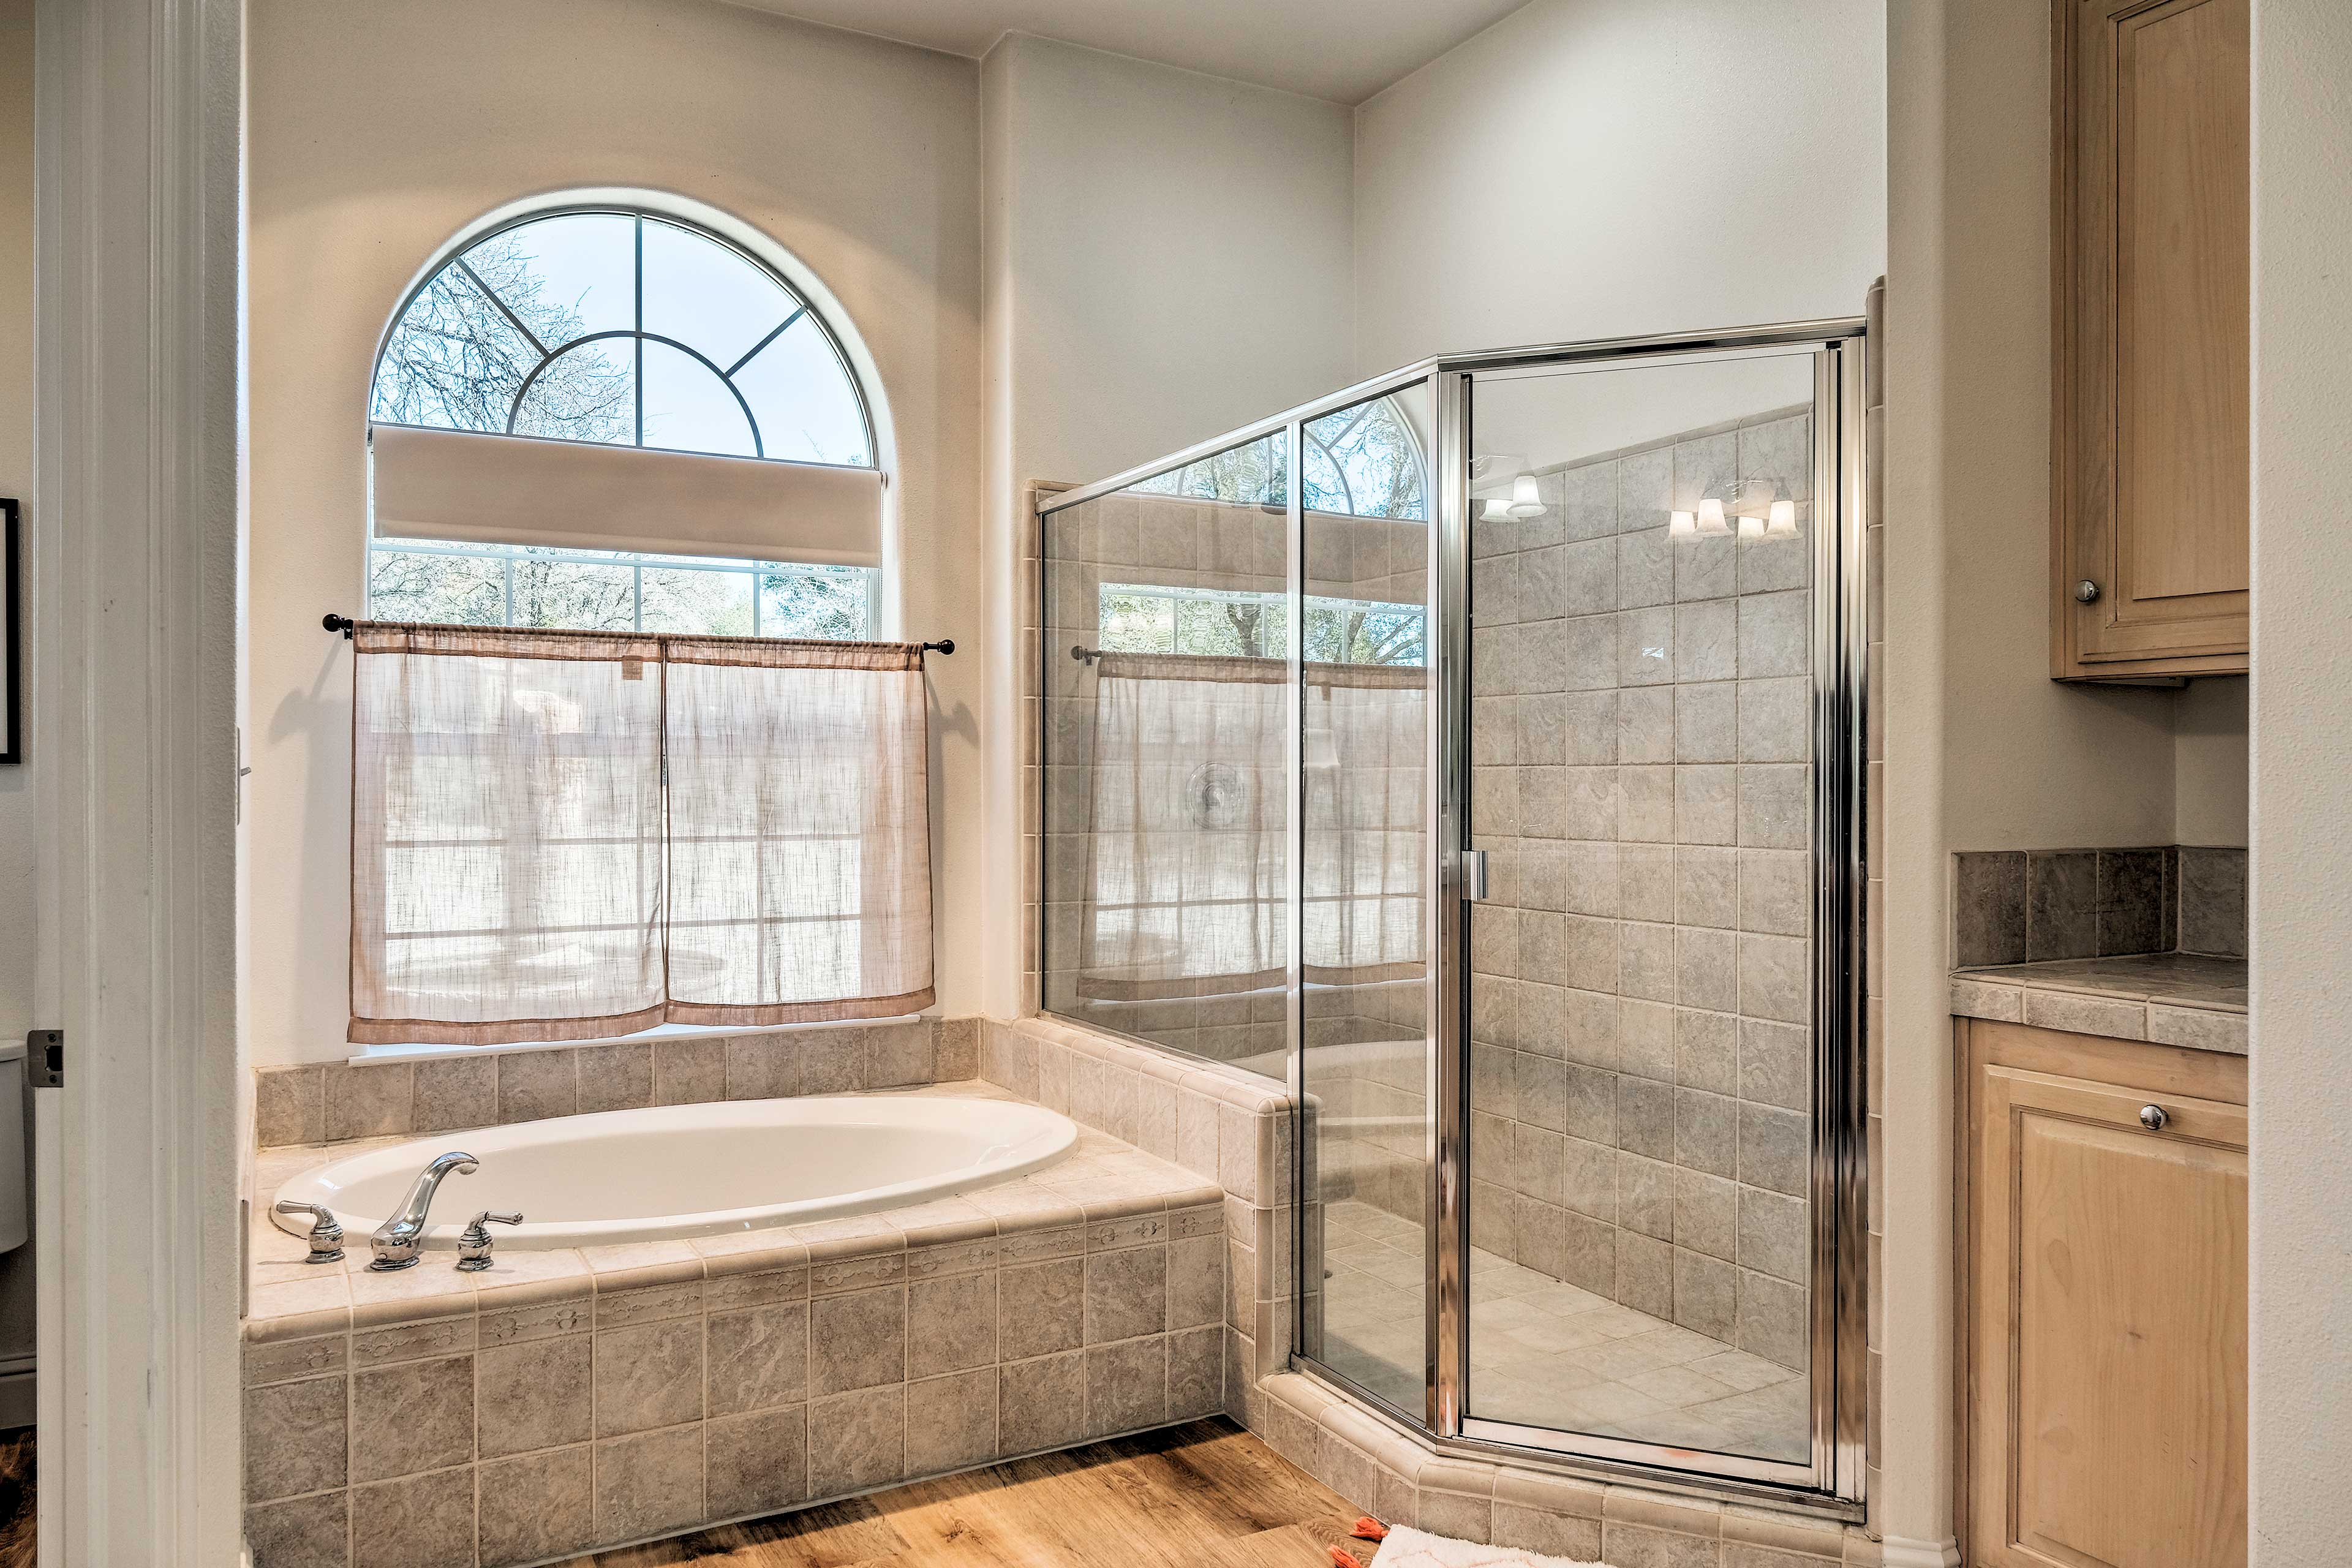 Indulge with an evening soak in the master bathroom's tub.